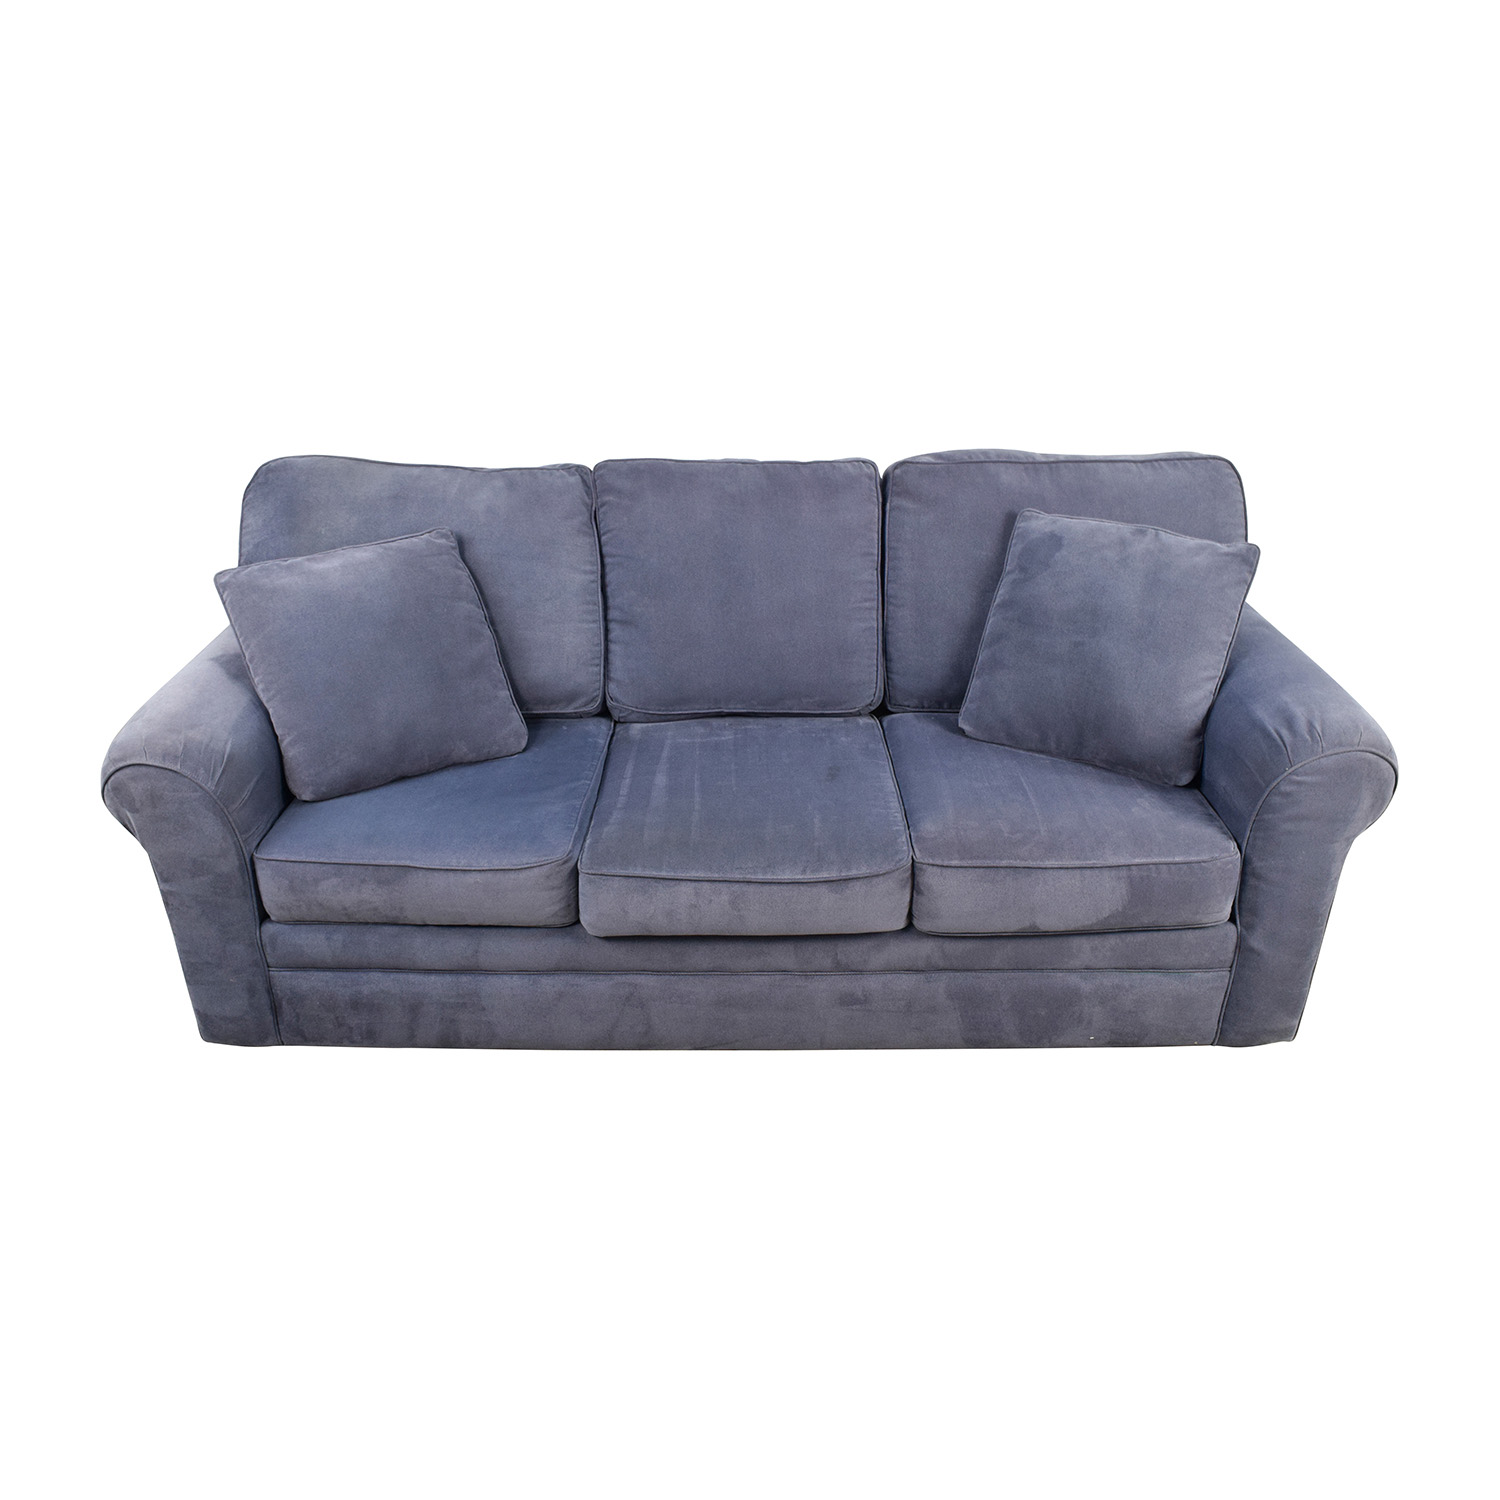 shop Klaussner Furniture Klaussner Hubbard Incline Naval Textured Velvet Sofa online